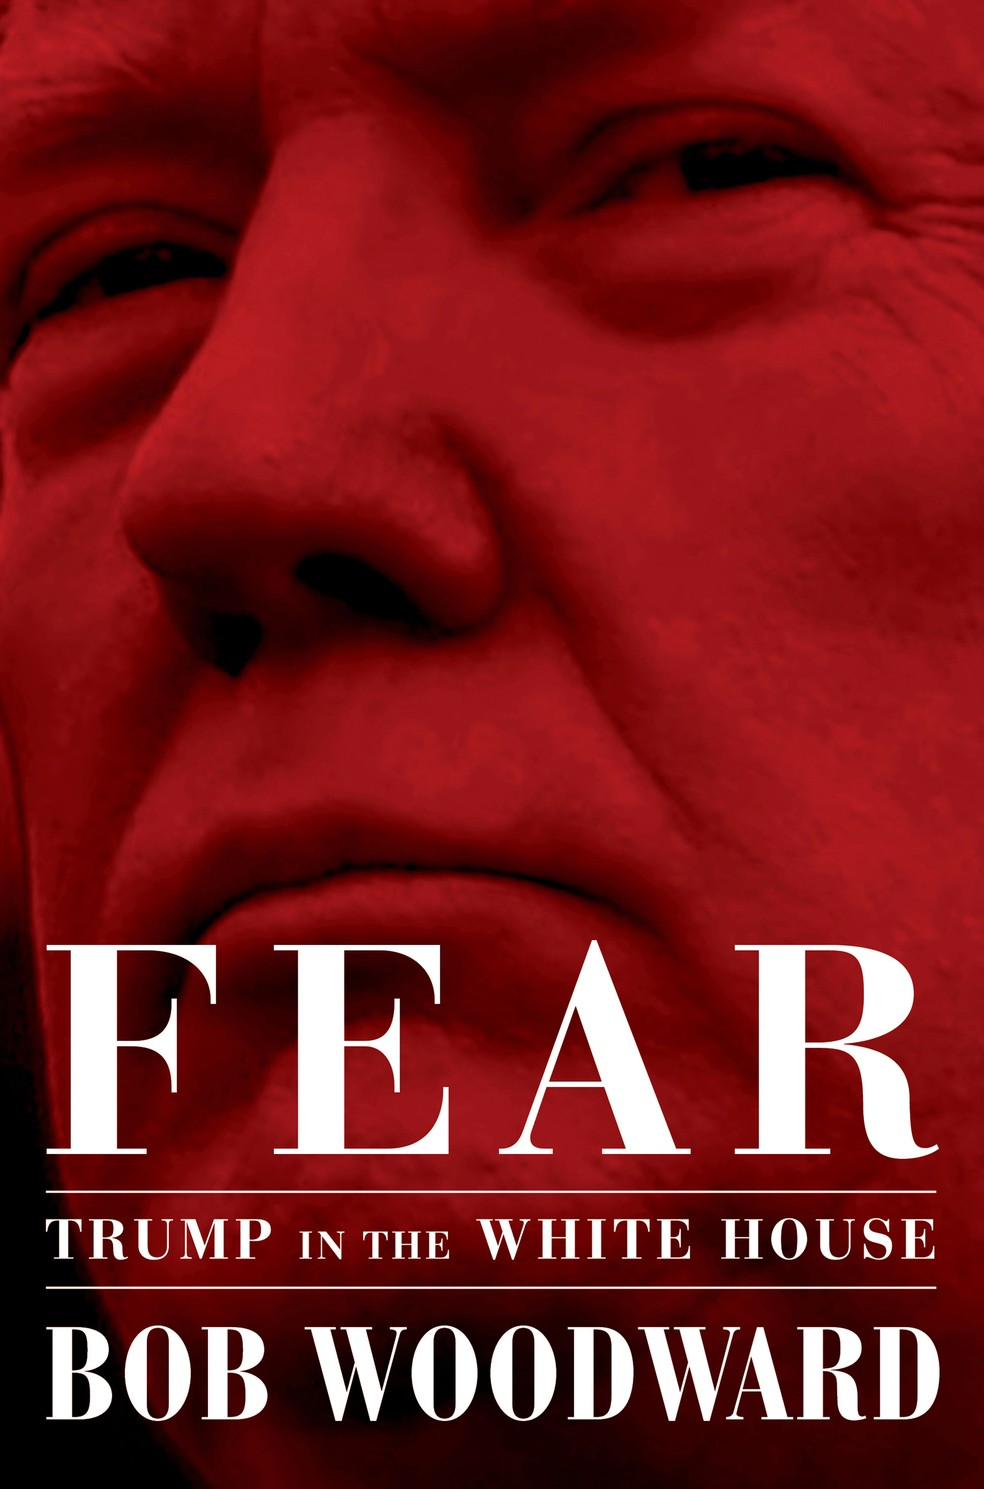 Capa do livro 'Fear: Trump in the White House', de Bob Woodward — Foto: Simon & Schuster via AP